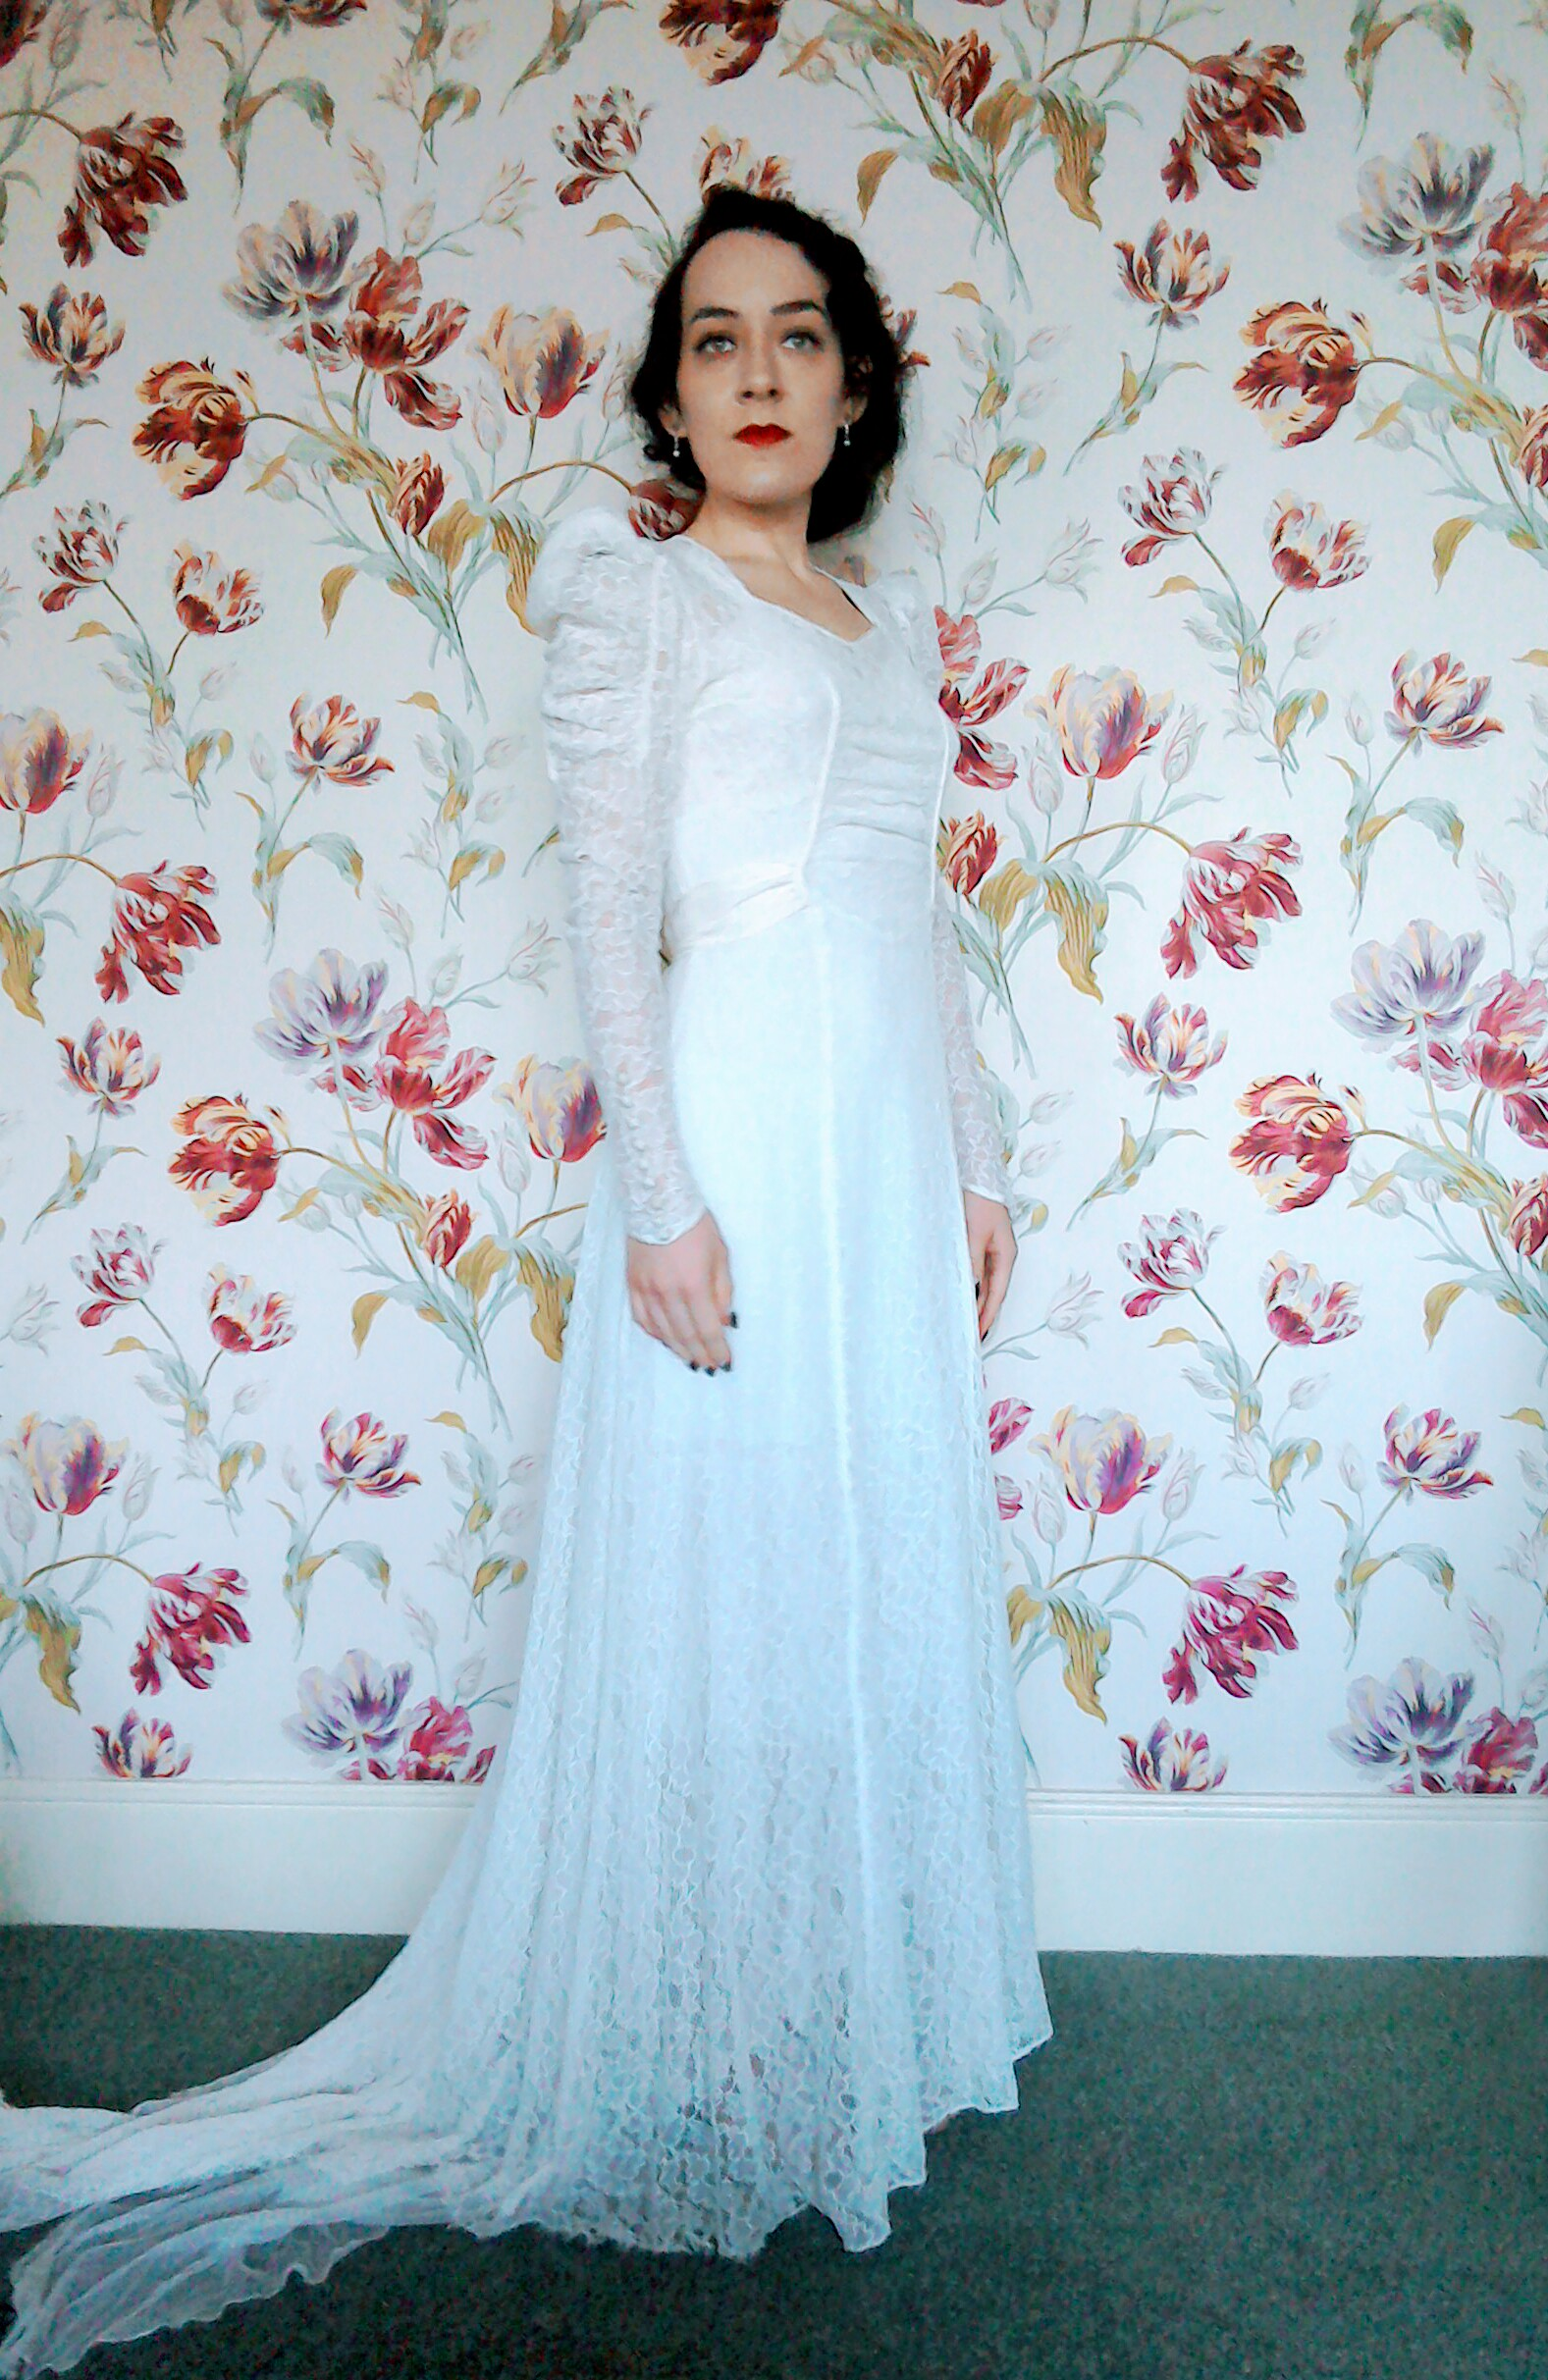 Vintage wedding dresses – The Girl loves vintage